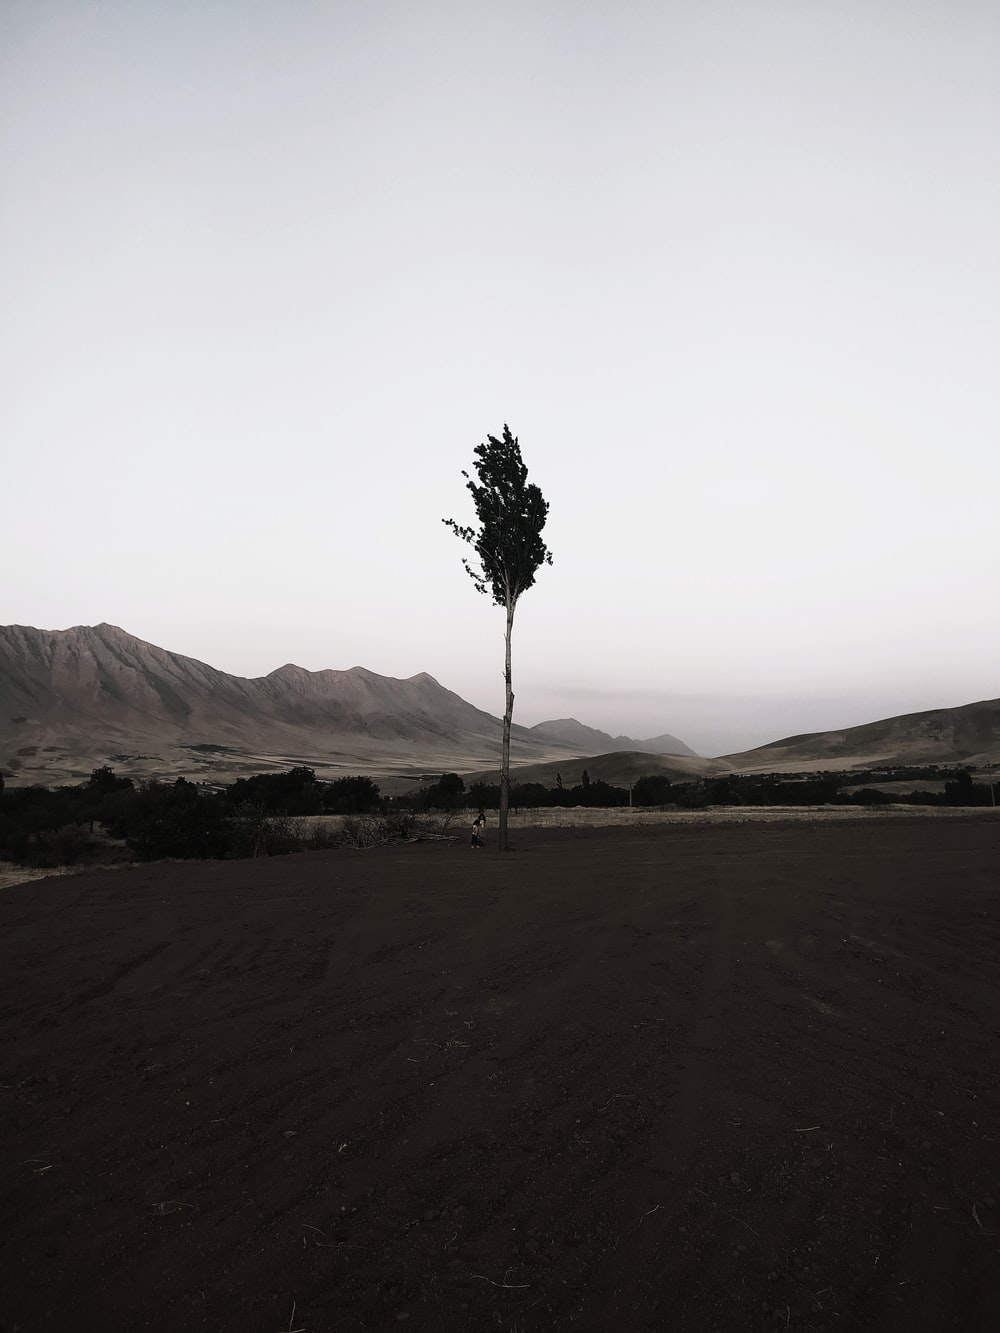 green tree on brown field during daytime